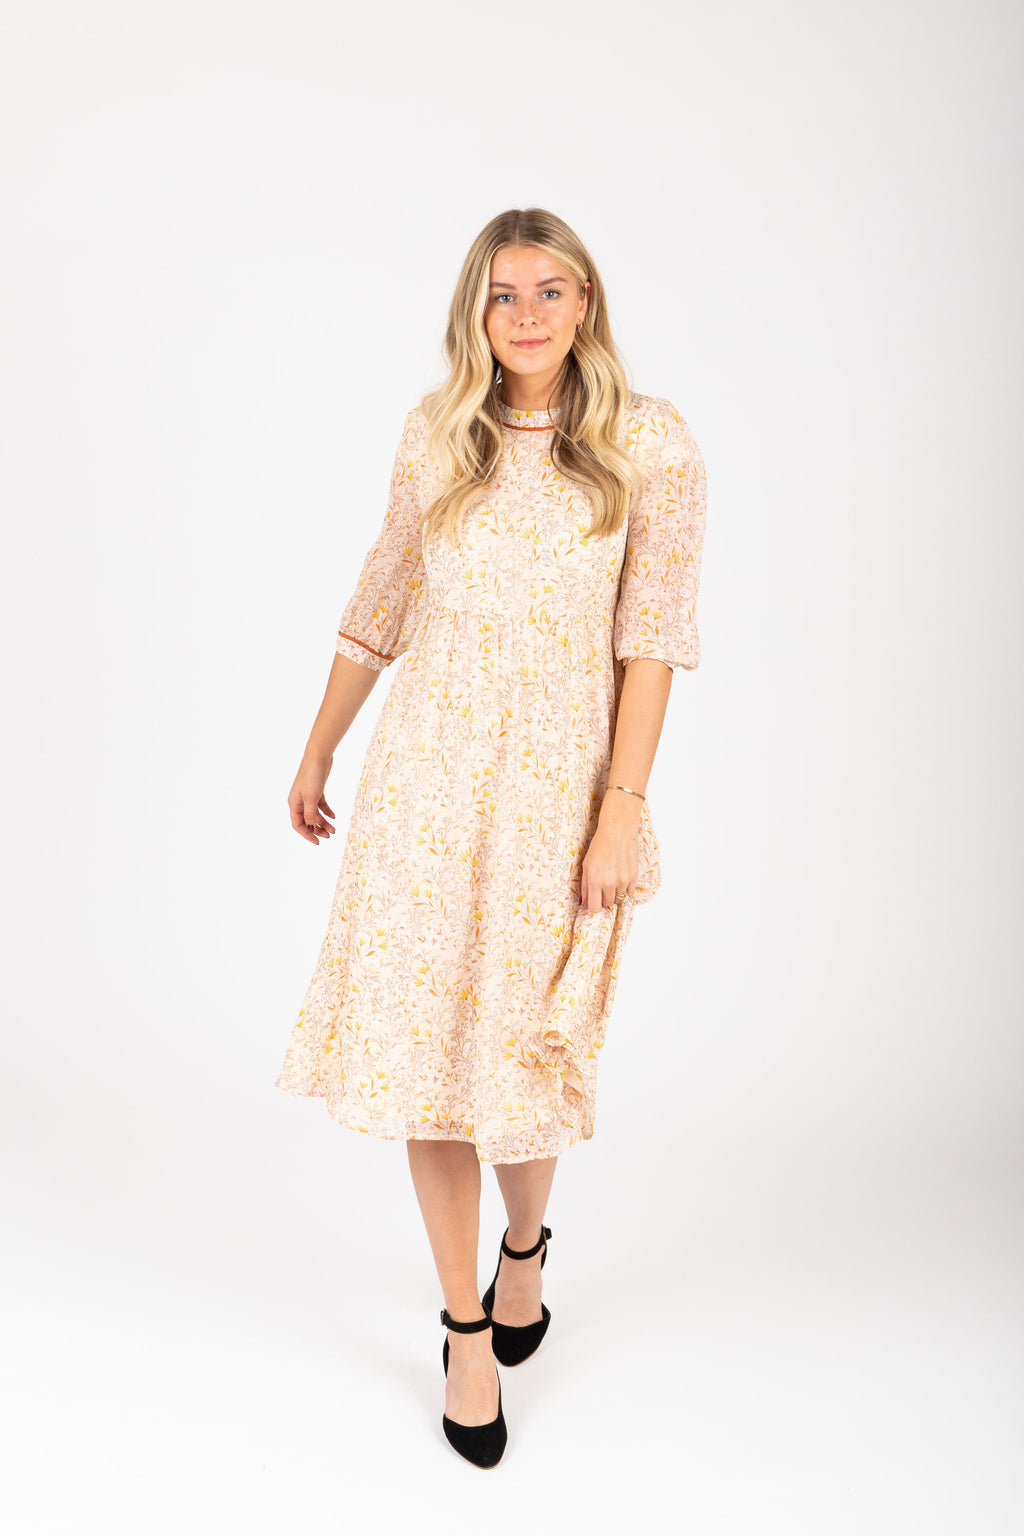 Piper & Scoot: The Chandler Patterned Detail Dress in Natural, studio shoot; front view